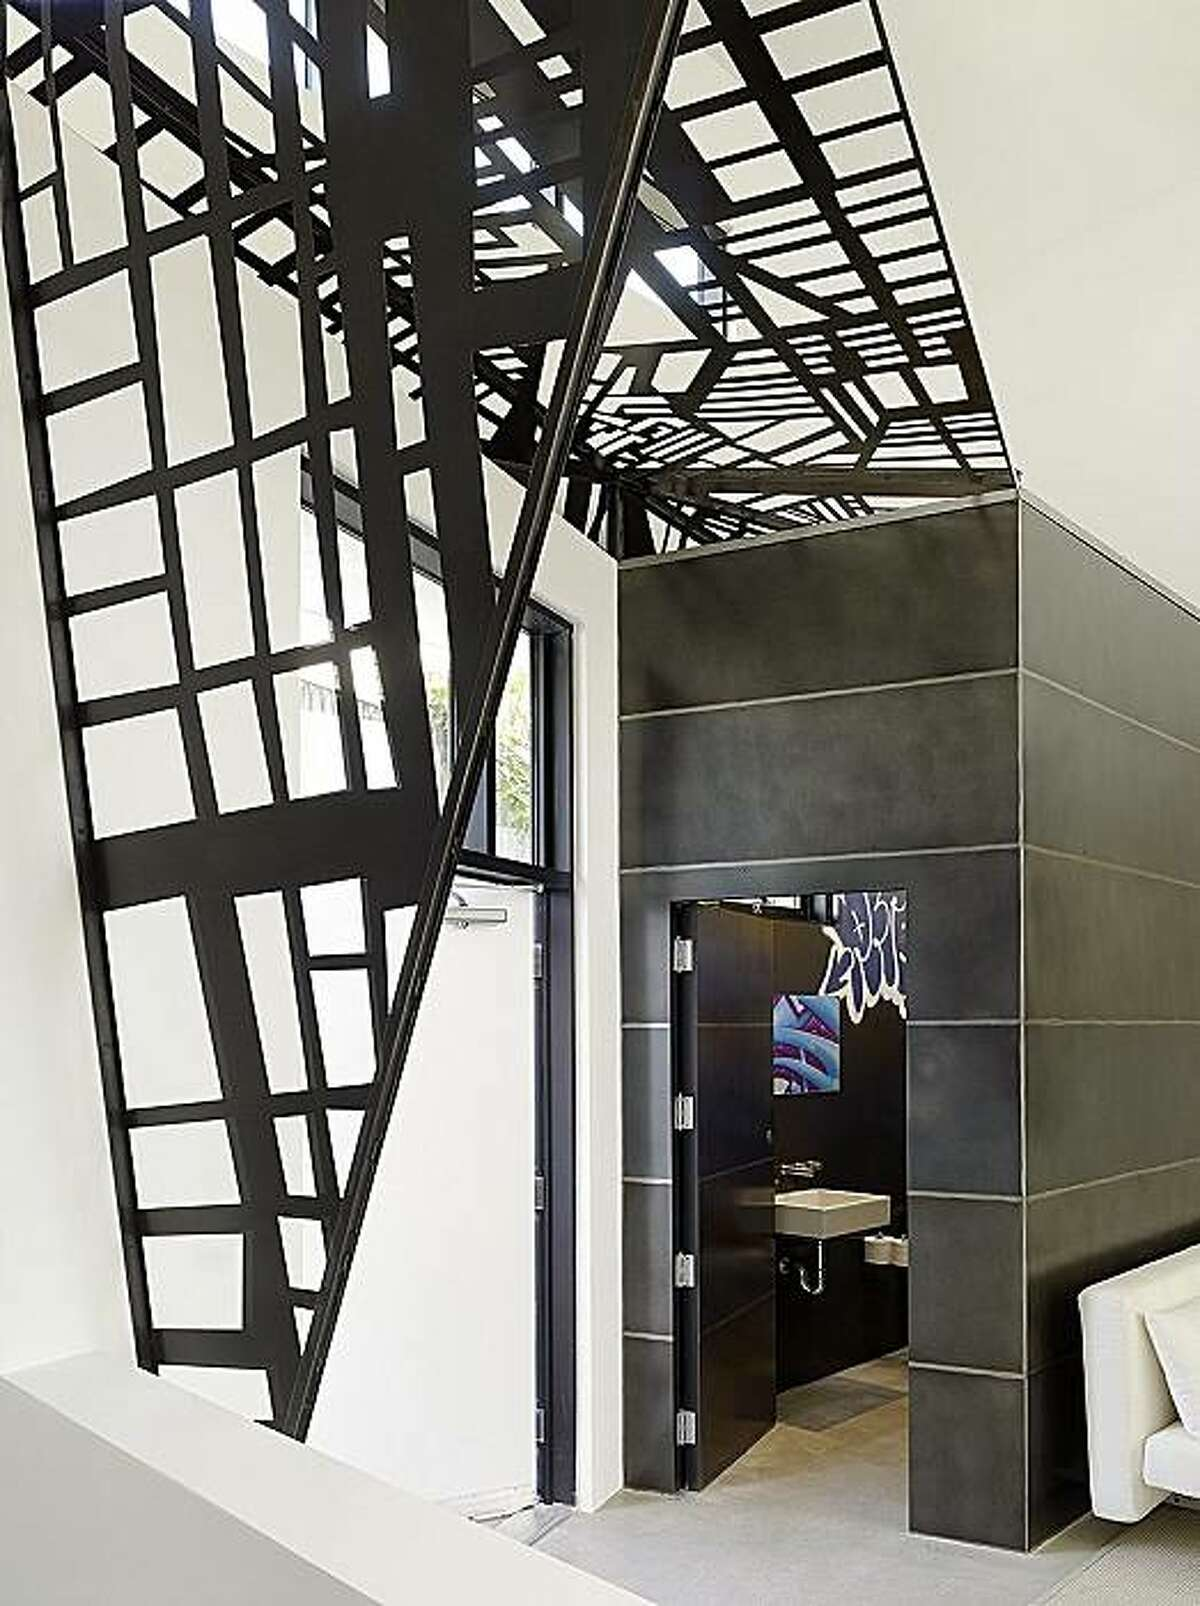 This loft in Venice, Calif., needed a better sense of entry, so Hutton created a canopy of steel cut into the pattern of the streets in the neighborhood.